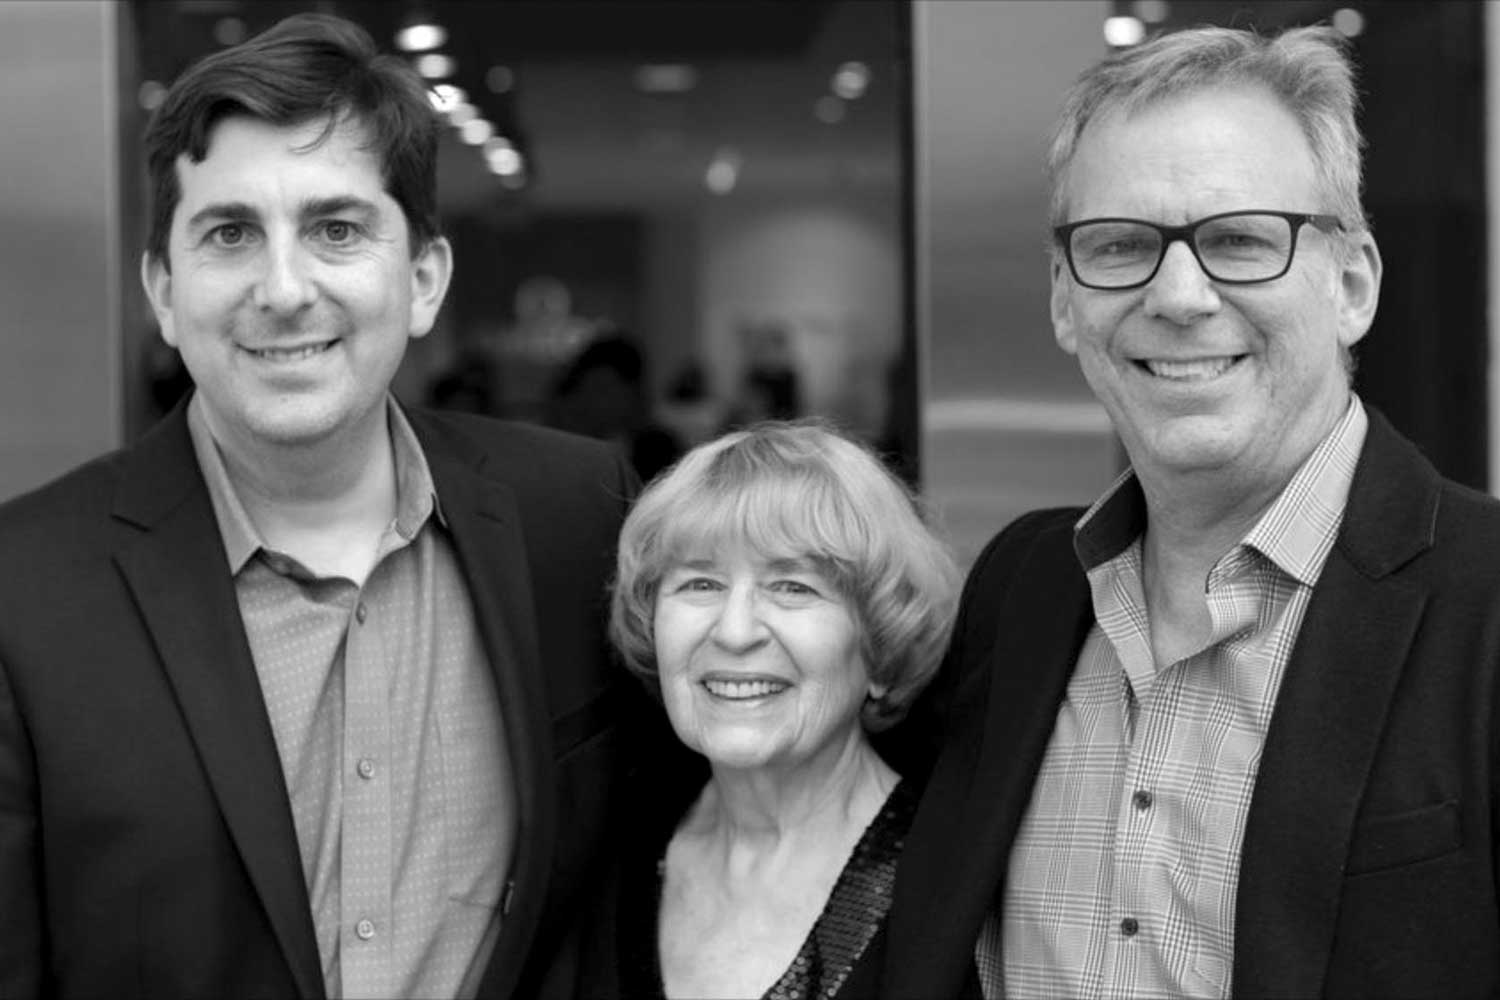 Rob Kaplan (l.) and Russ Kaplan (r.), with their mom in the middle